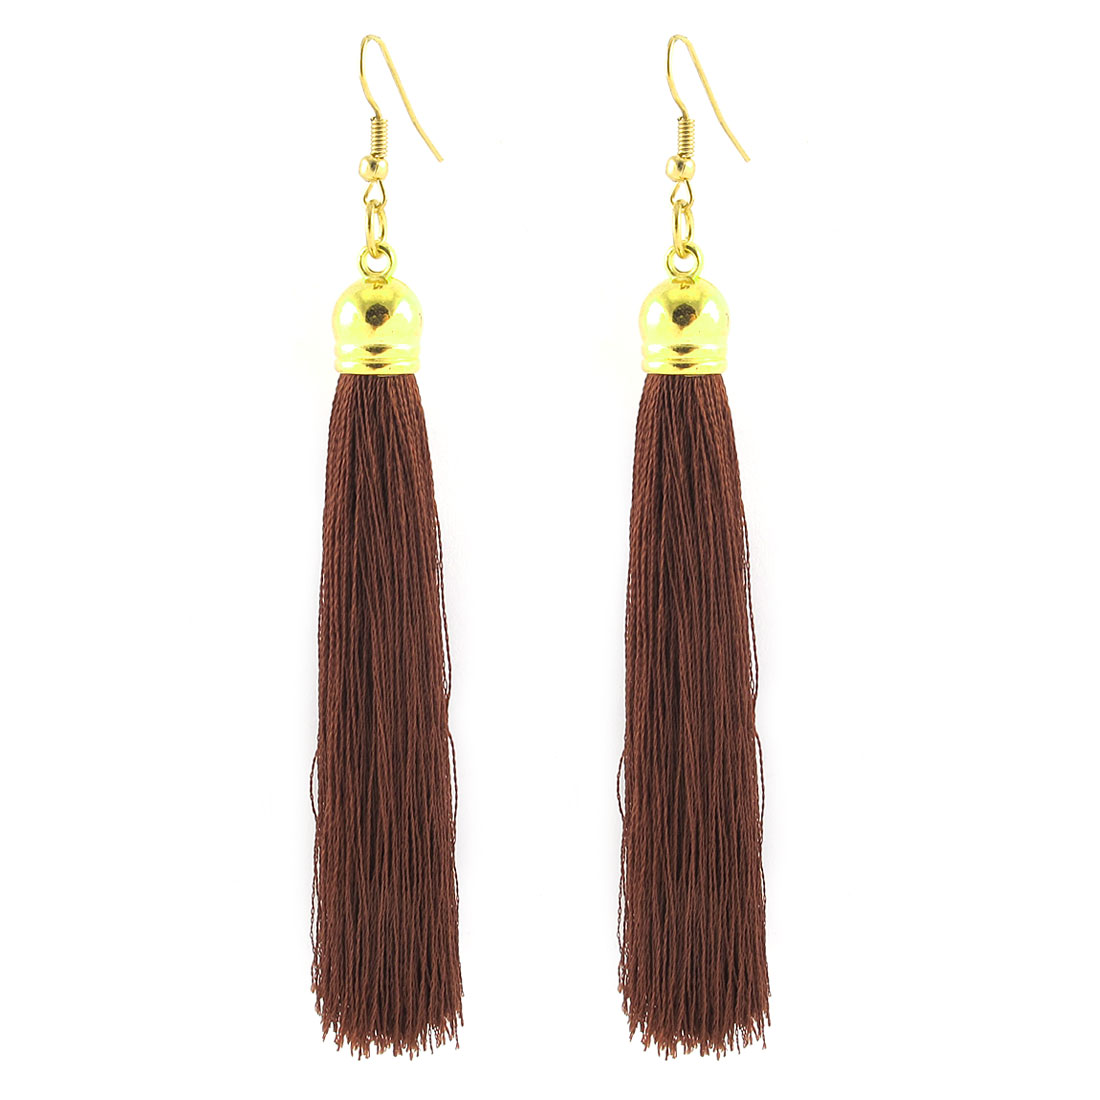 Lady Long Tassel Fringe Boho Style Hook Earrings Eardrop Jewelry Pair Brown